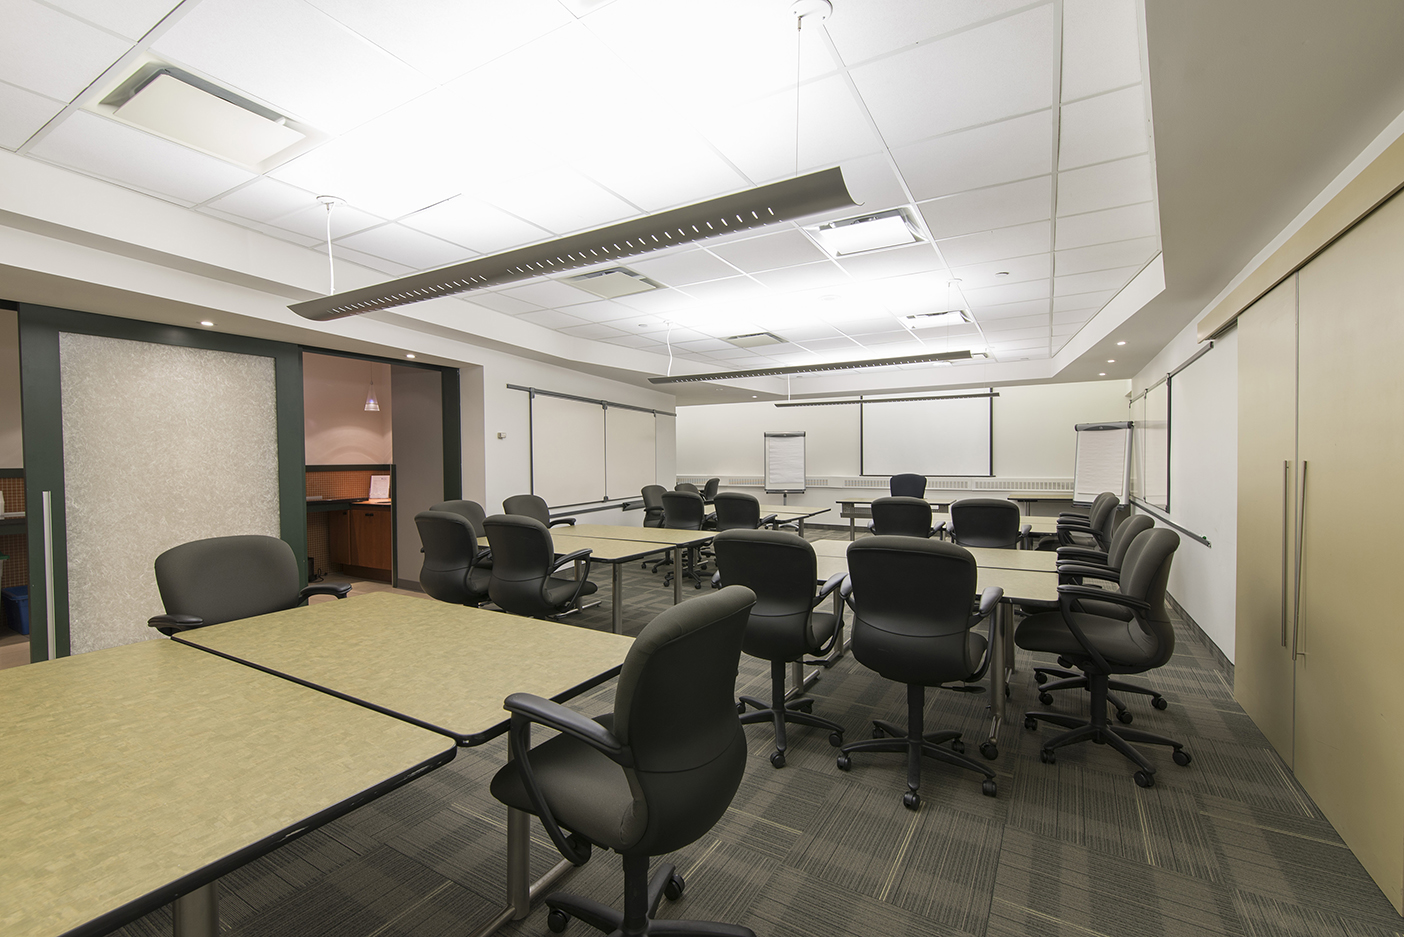 Budget Office Space For Rent | Office Space for Lease in